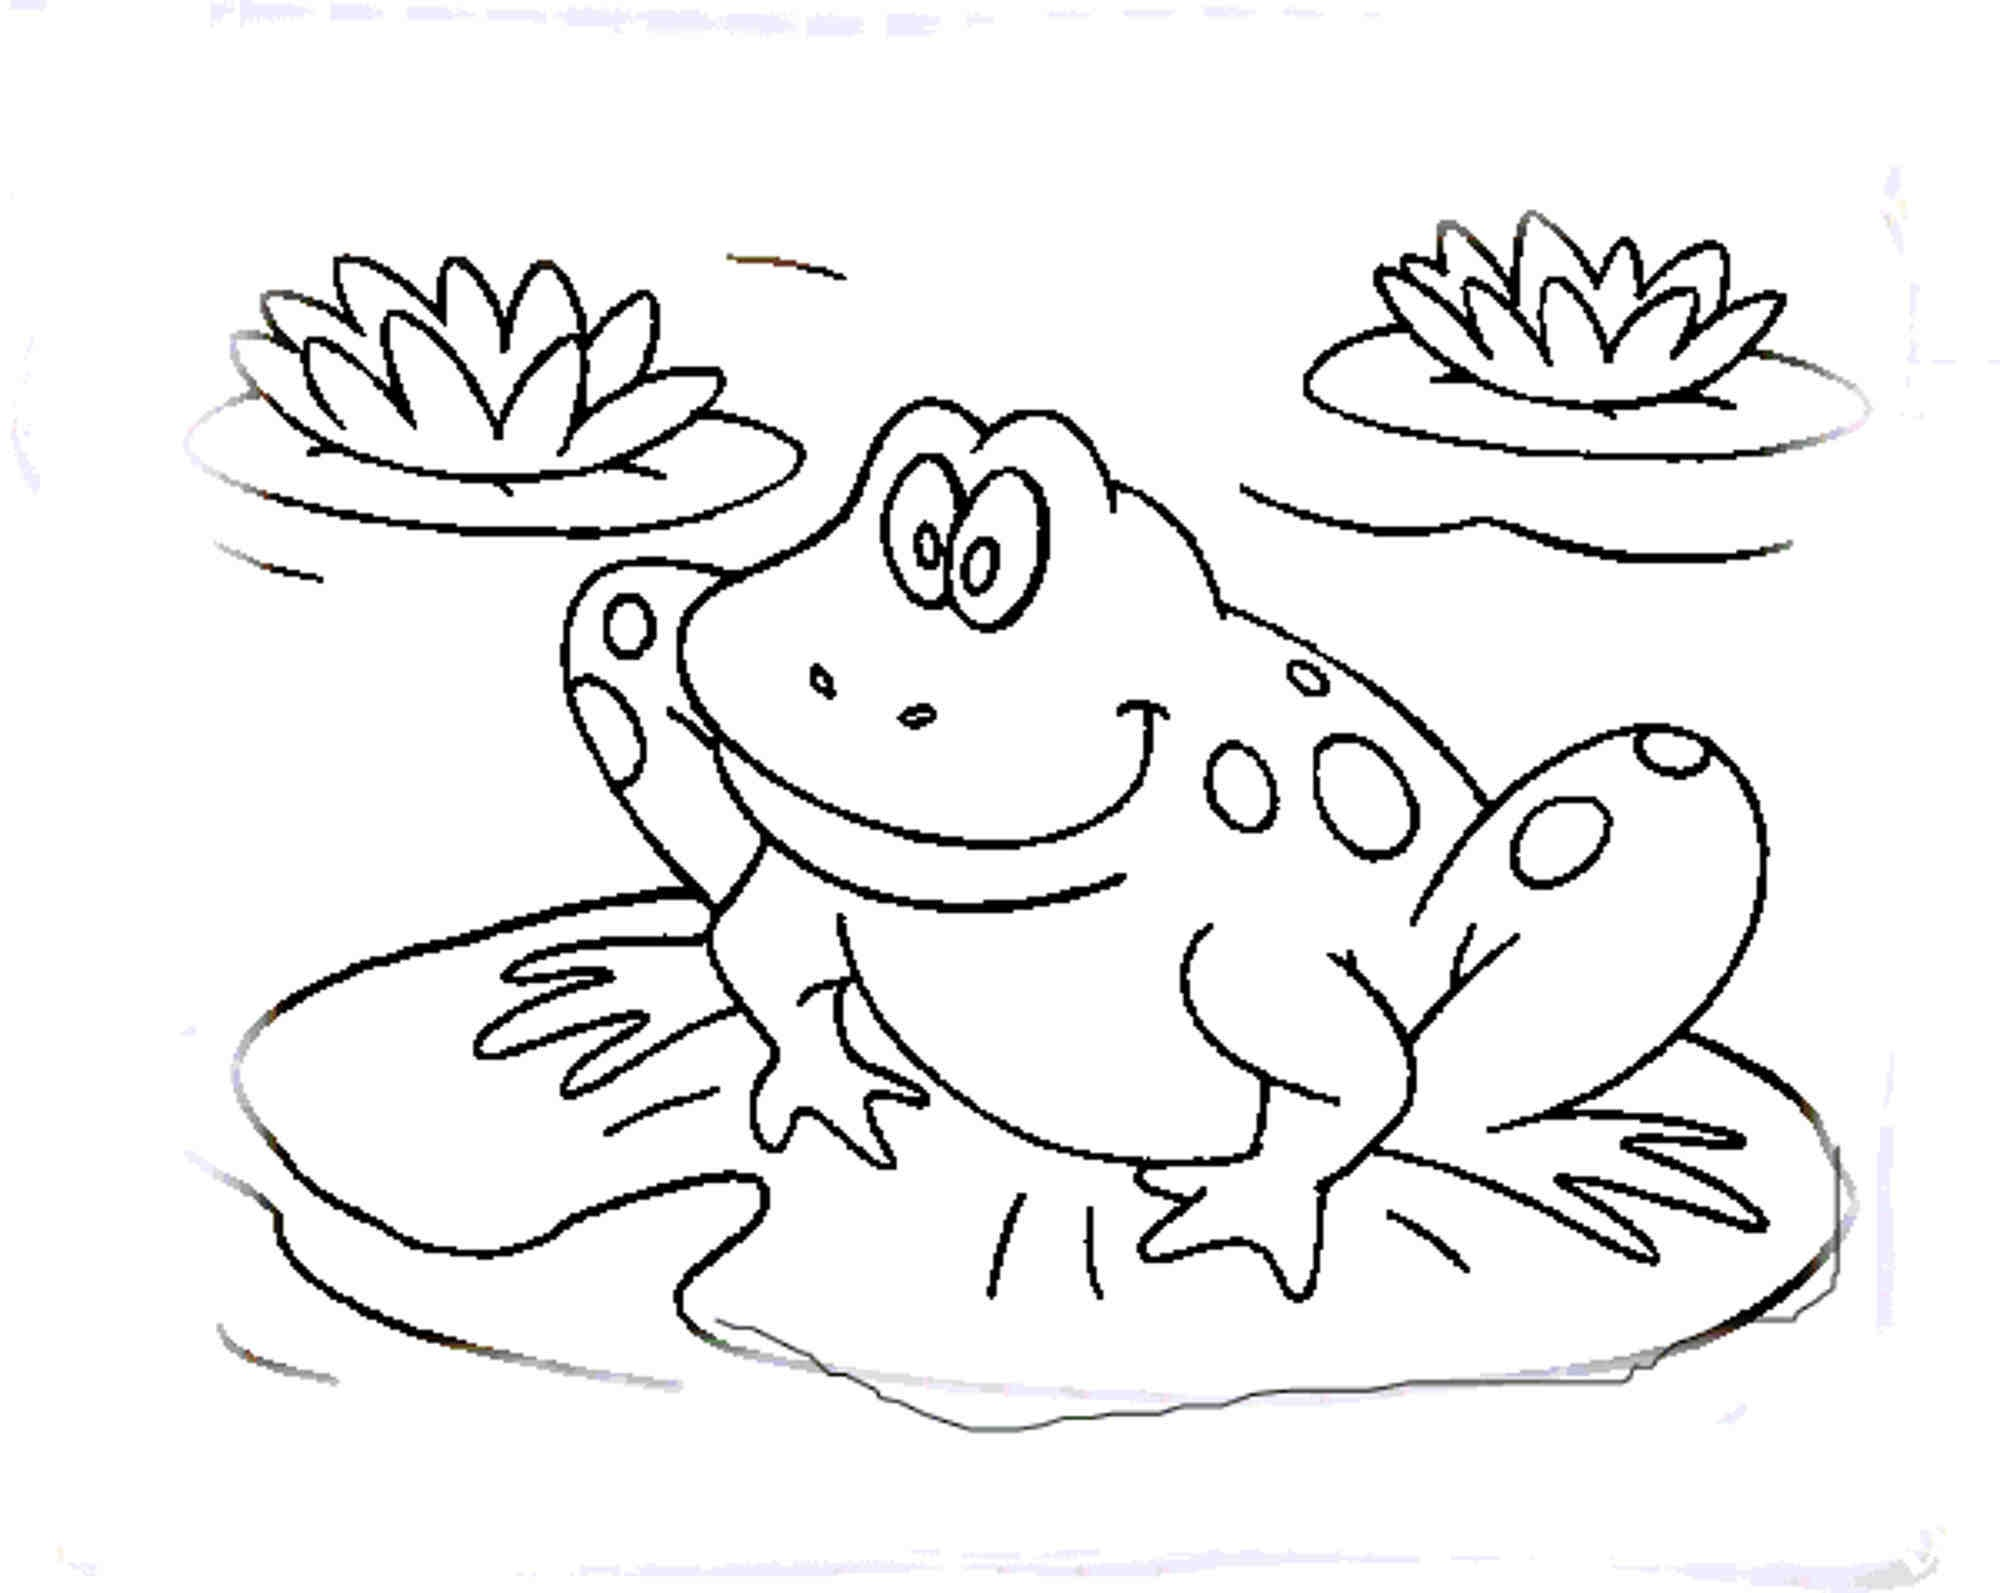 2000x1593 Elegant Confidential Frog To Color Free Printable Coloring Pages